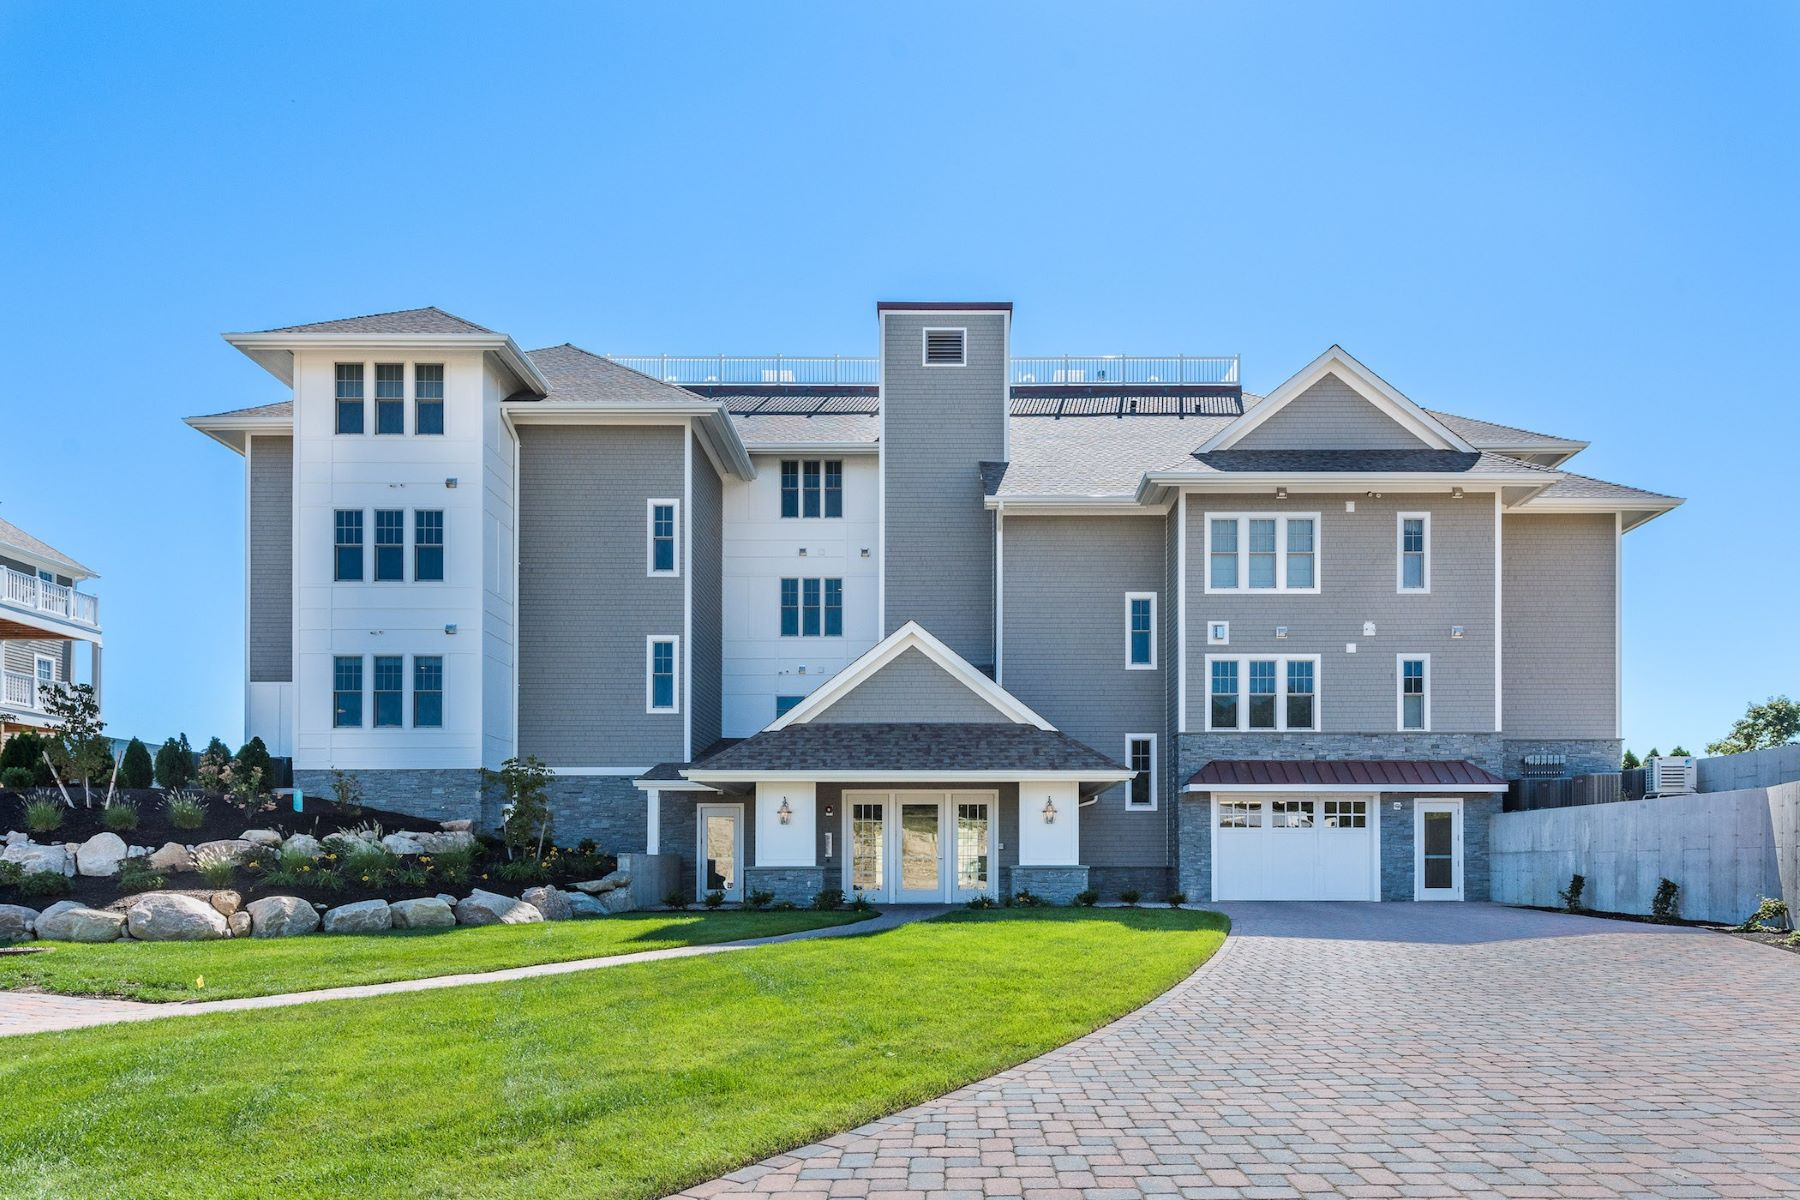 Condominium for Sale at 7 Compass Wy D302, #D302, Westerly, RI 7 Compass Wy D302 D302 Westerly, Rhode Island 02891 United States